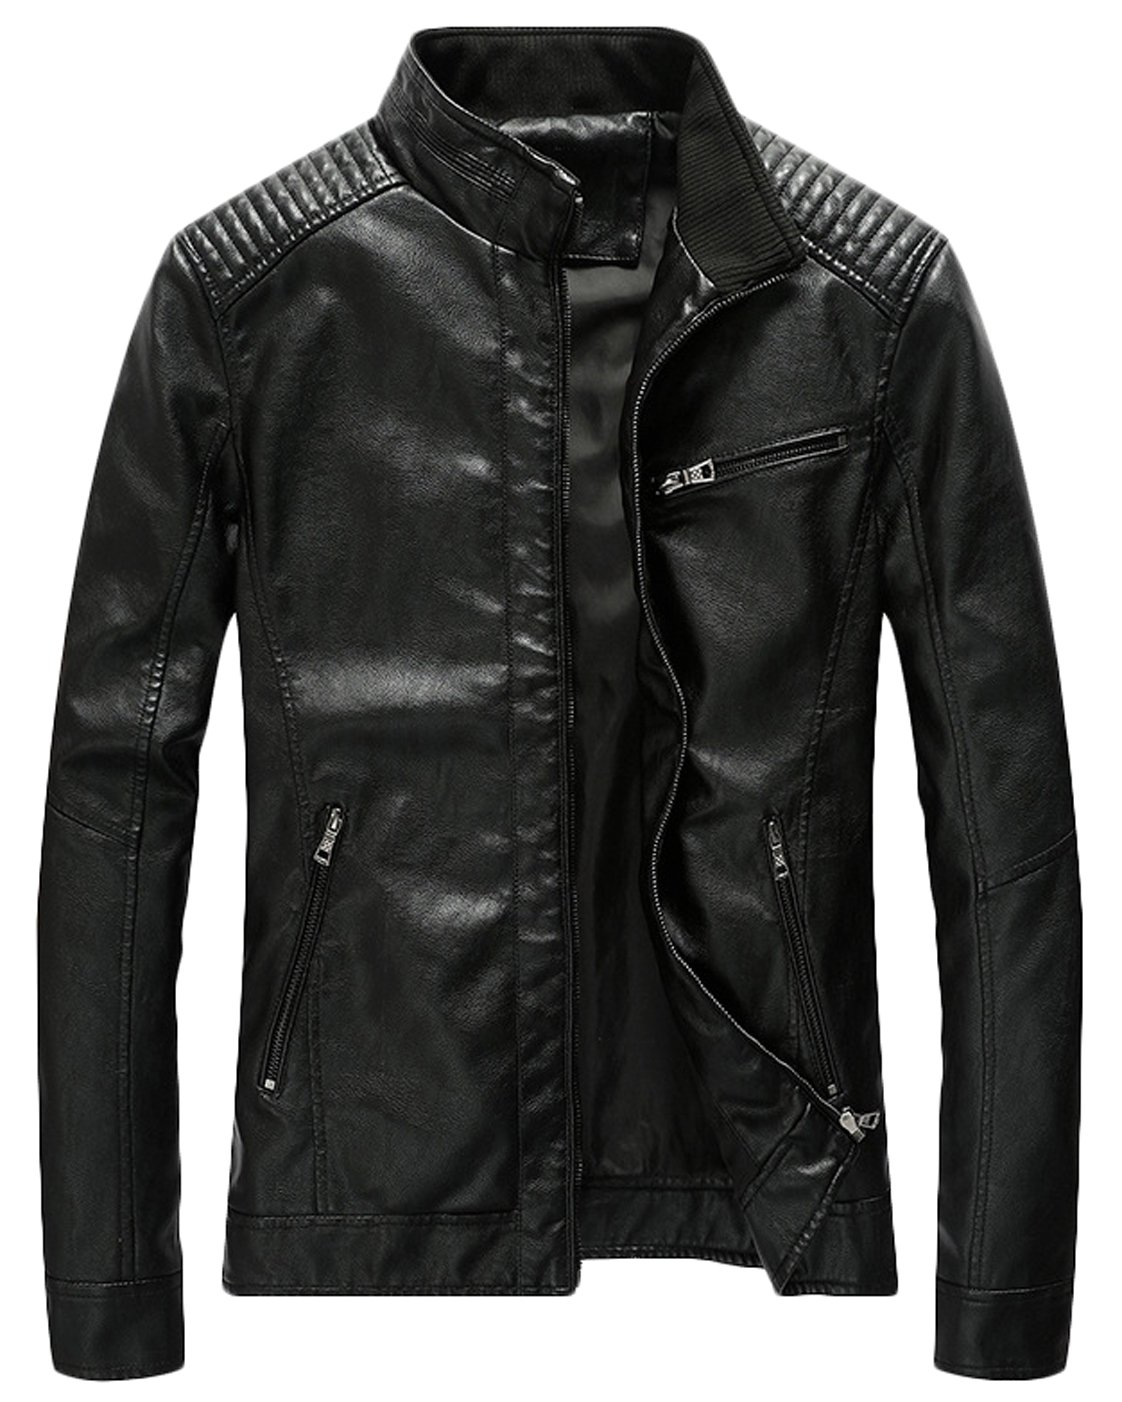 Youhan Men's Casual Zip up Slim Bomber Faux Leather Jacket (XX-Large, Black) by Youhan